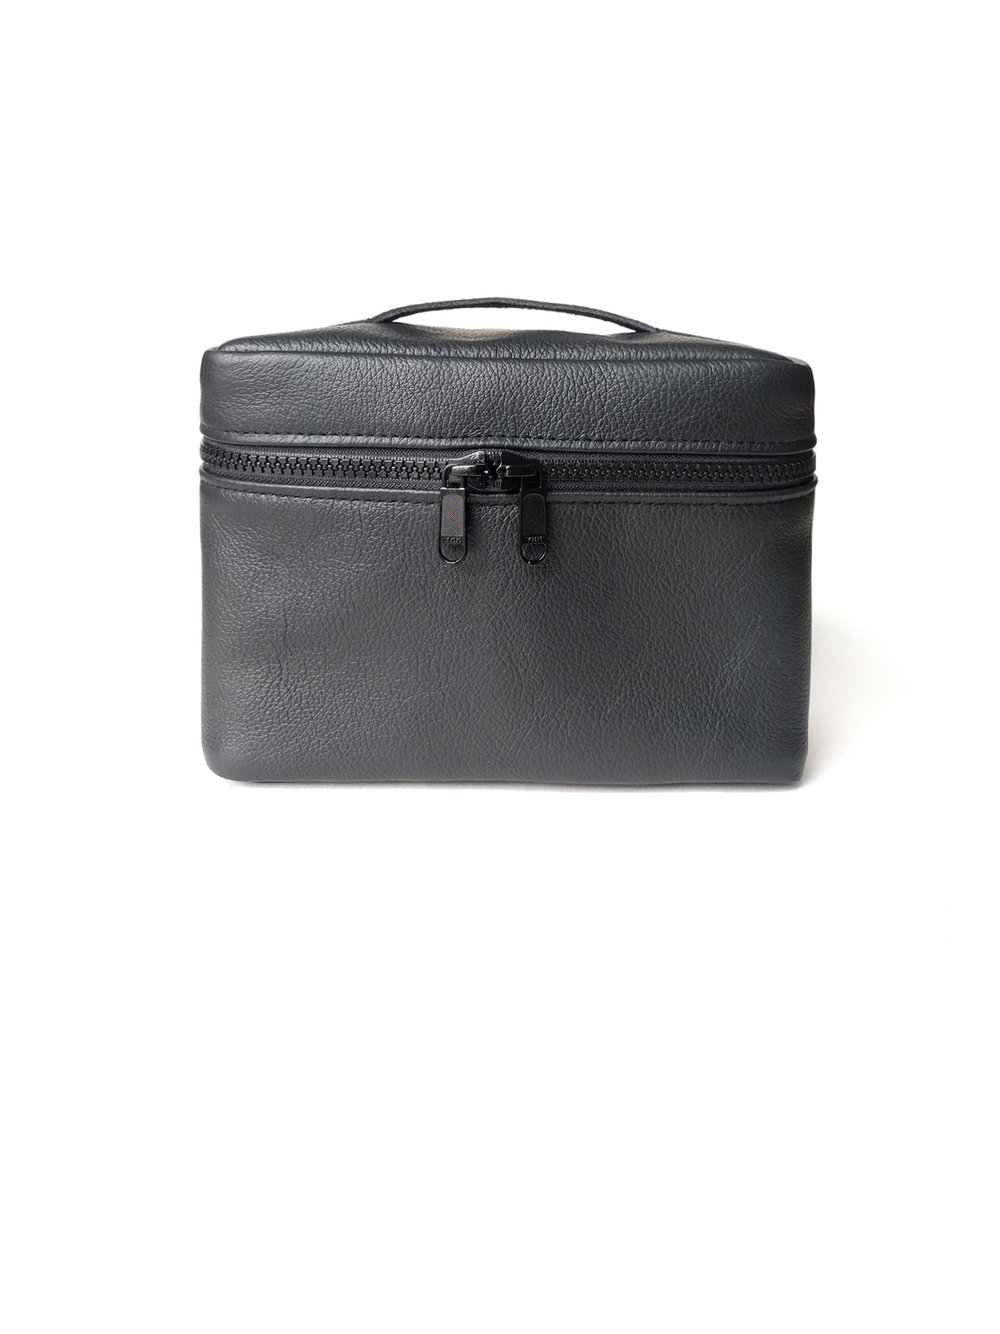 Box leather dopp kit - 90.00$